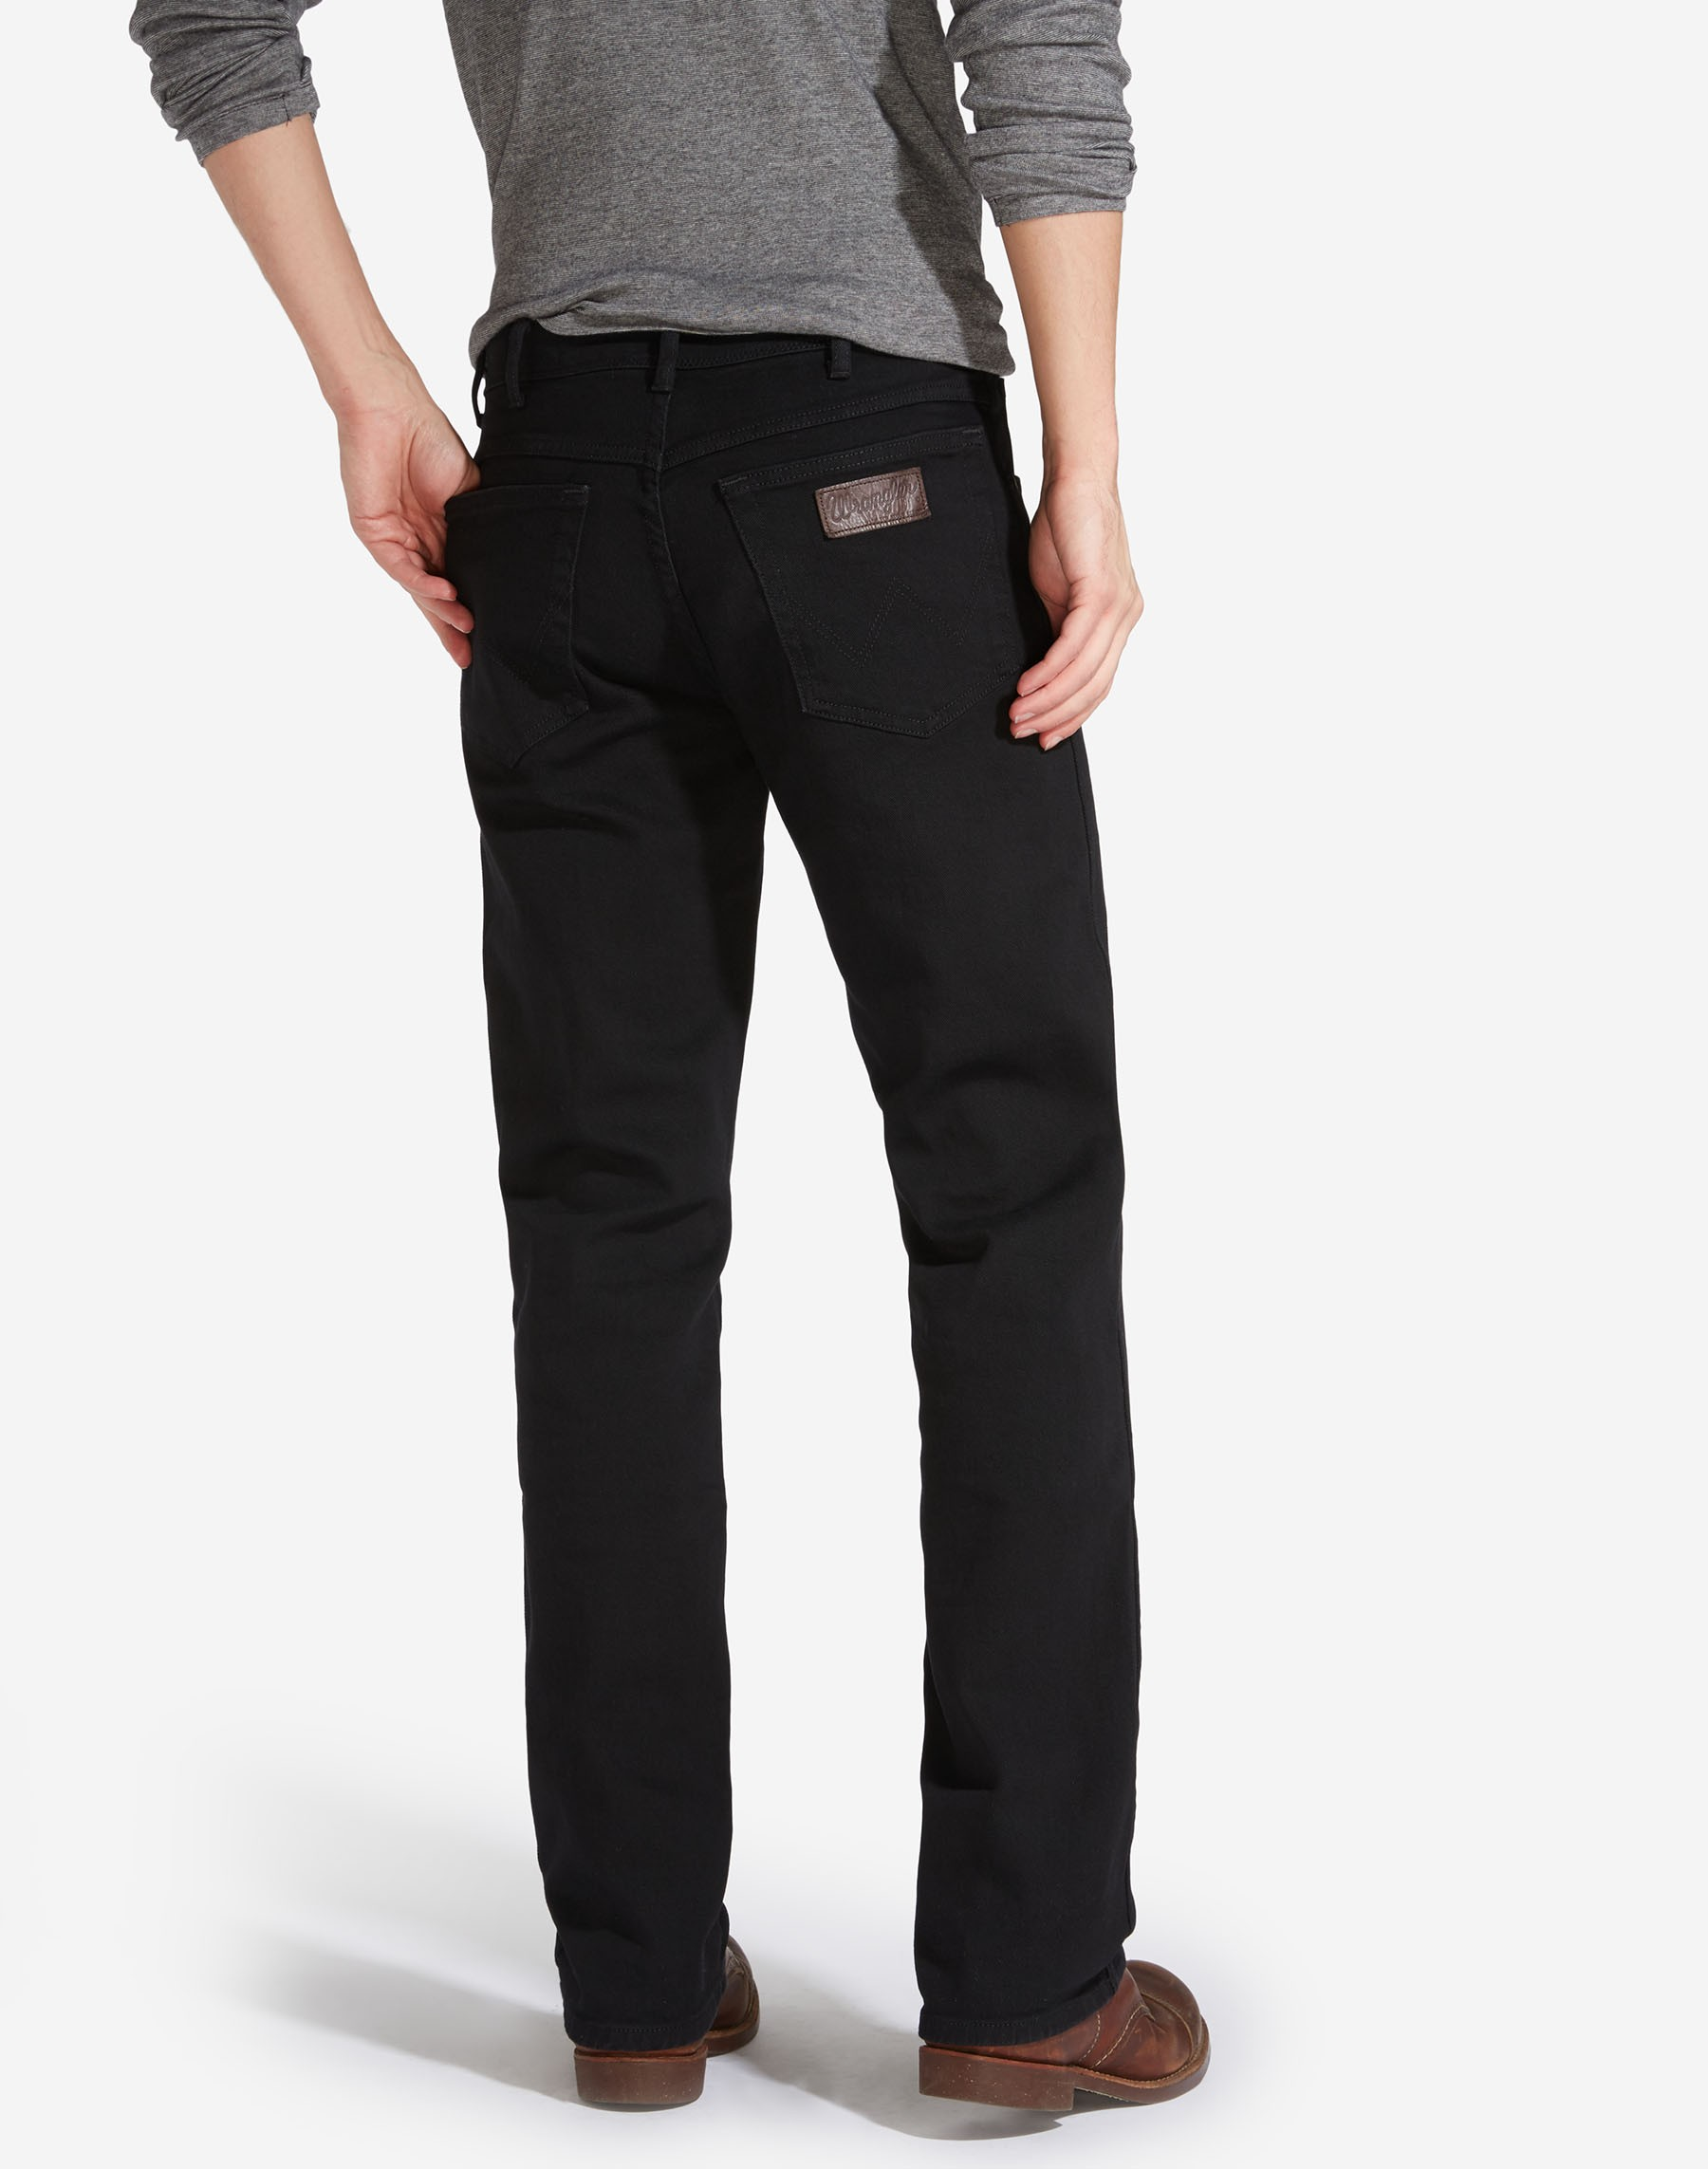 Mens-Wrangler-039-Texas-039-Jeans-Denim-Stretch-Original-Straight-Fit thumbnail 5